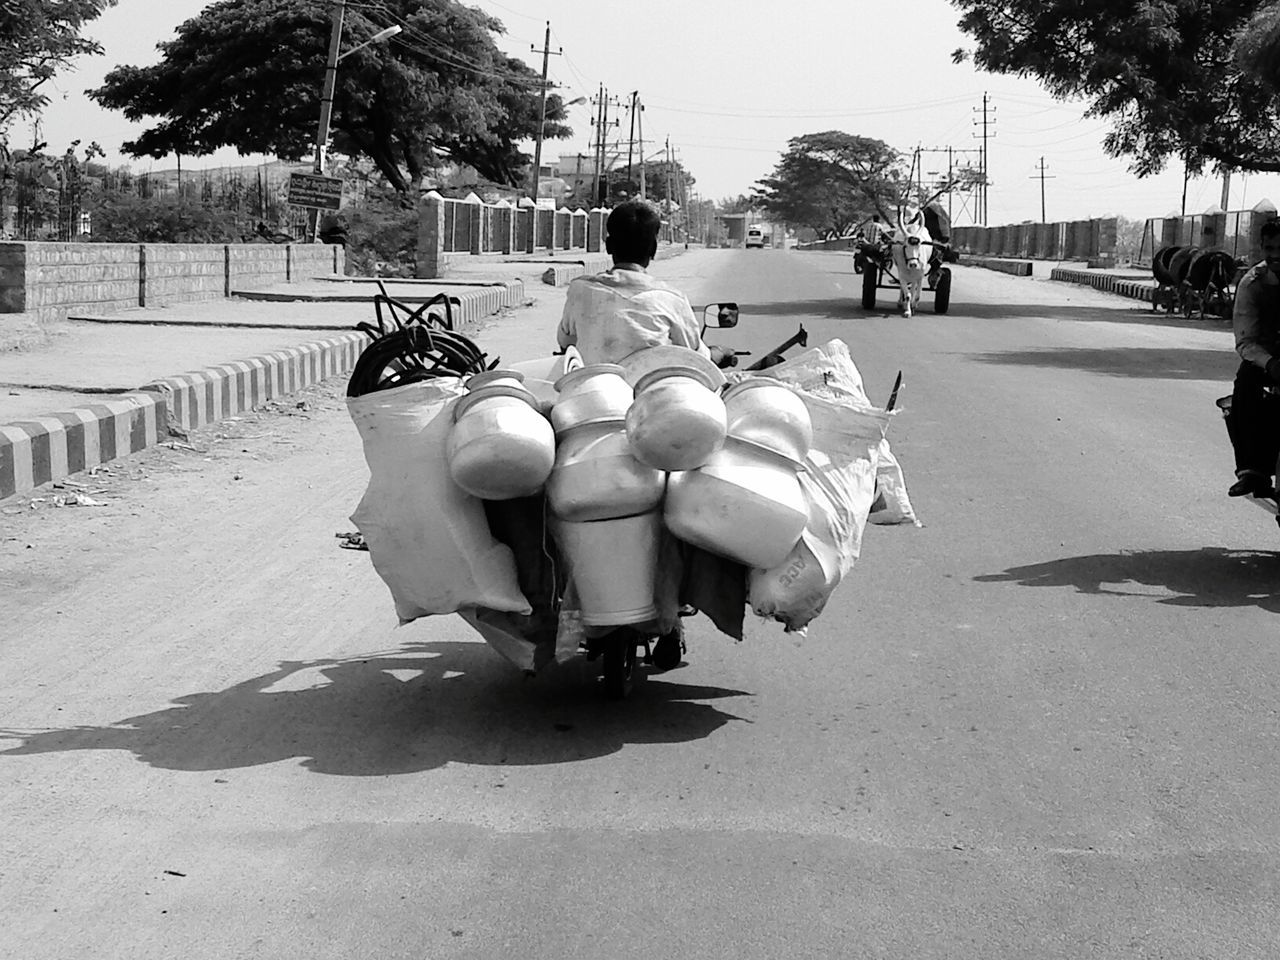 Amazing People Bicycle Load Funny Pic Place And People JRPphotography Indian Roads Incidental People City Life Outdoors Battle Of The Cities Traveling Home For The Holidays The City Light